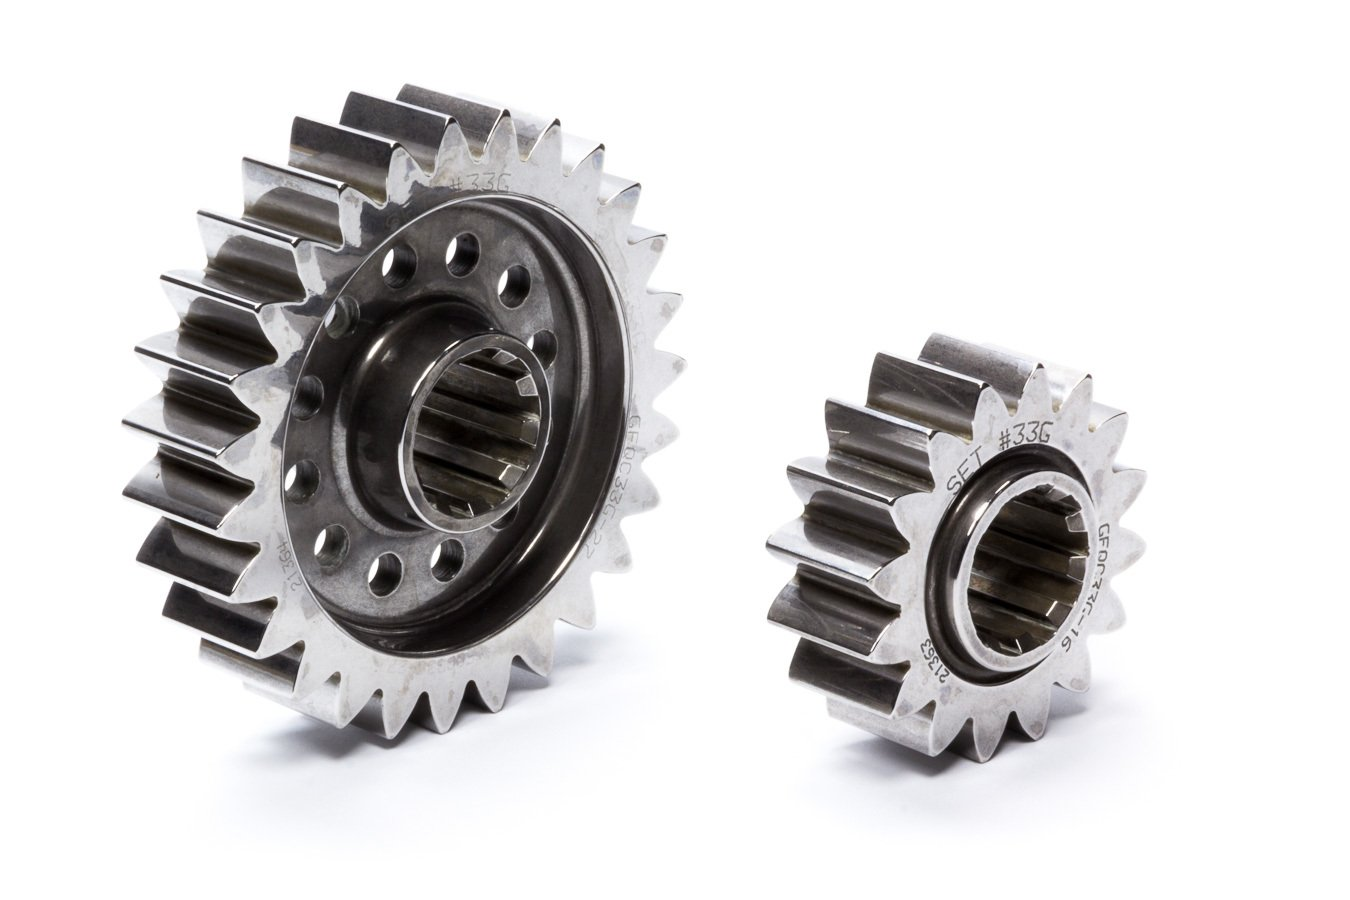 Diversified Machine Friction Fighter Quick Change Gears 33G